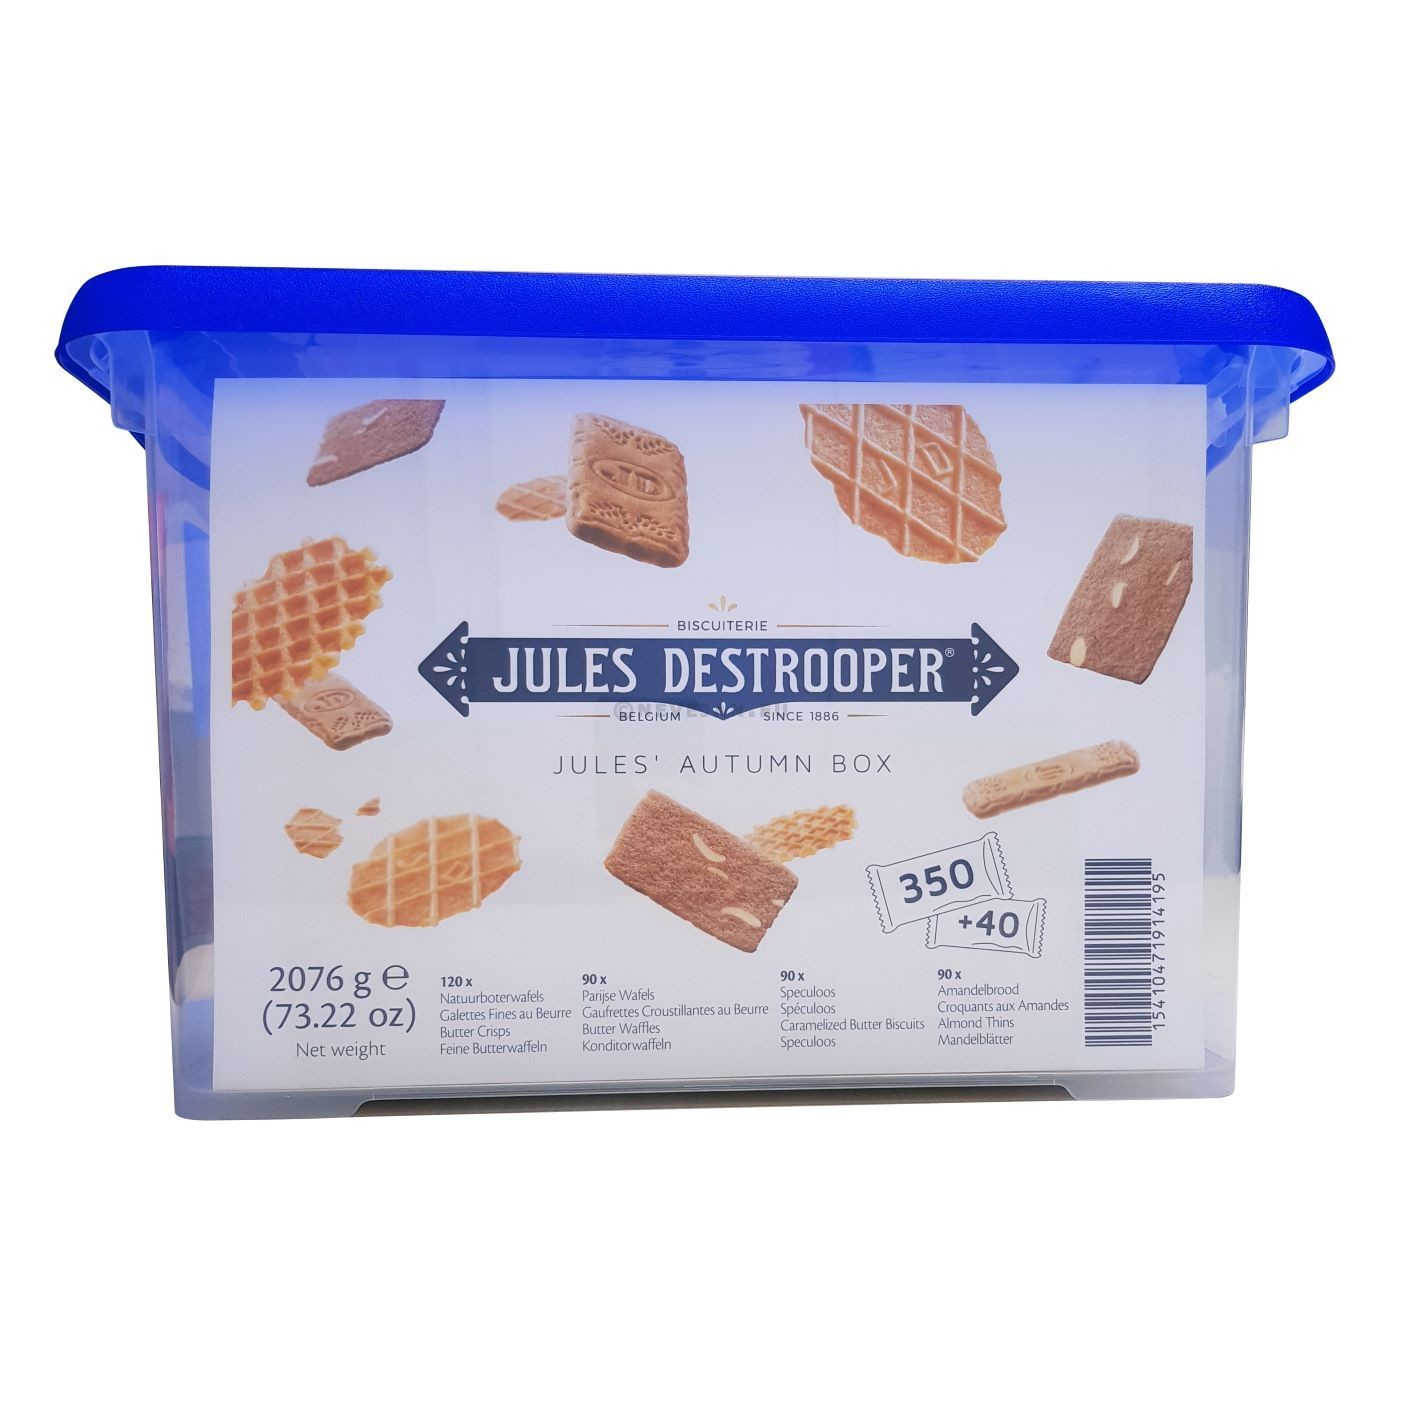 Jules Destrooper Autumn Box 350 + 40 gratis